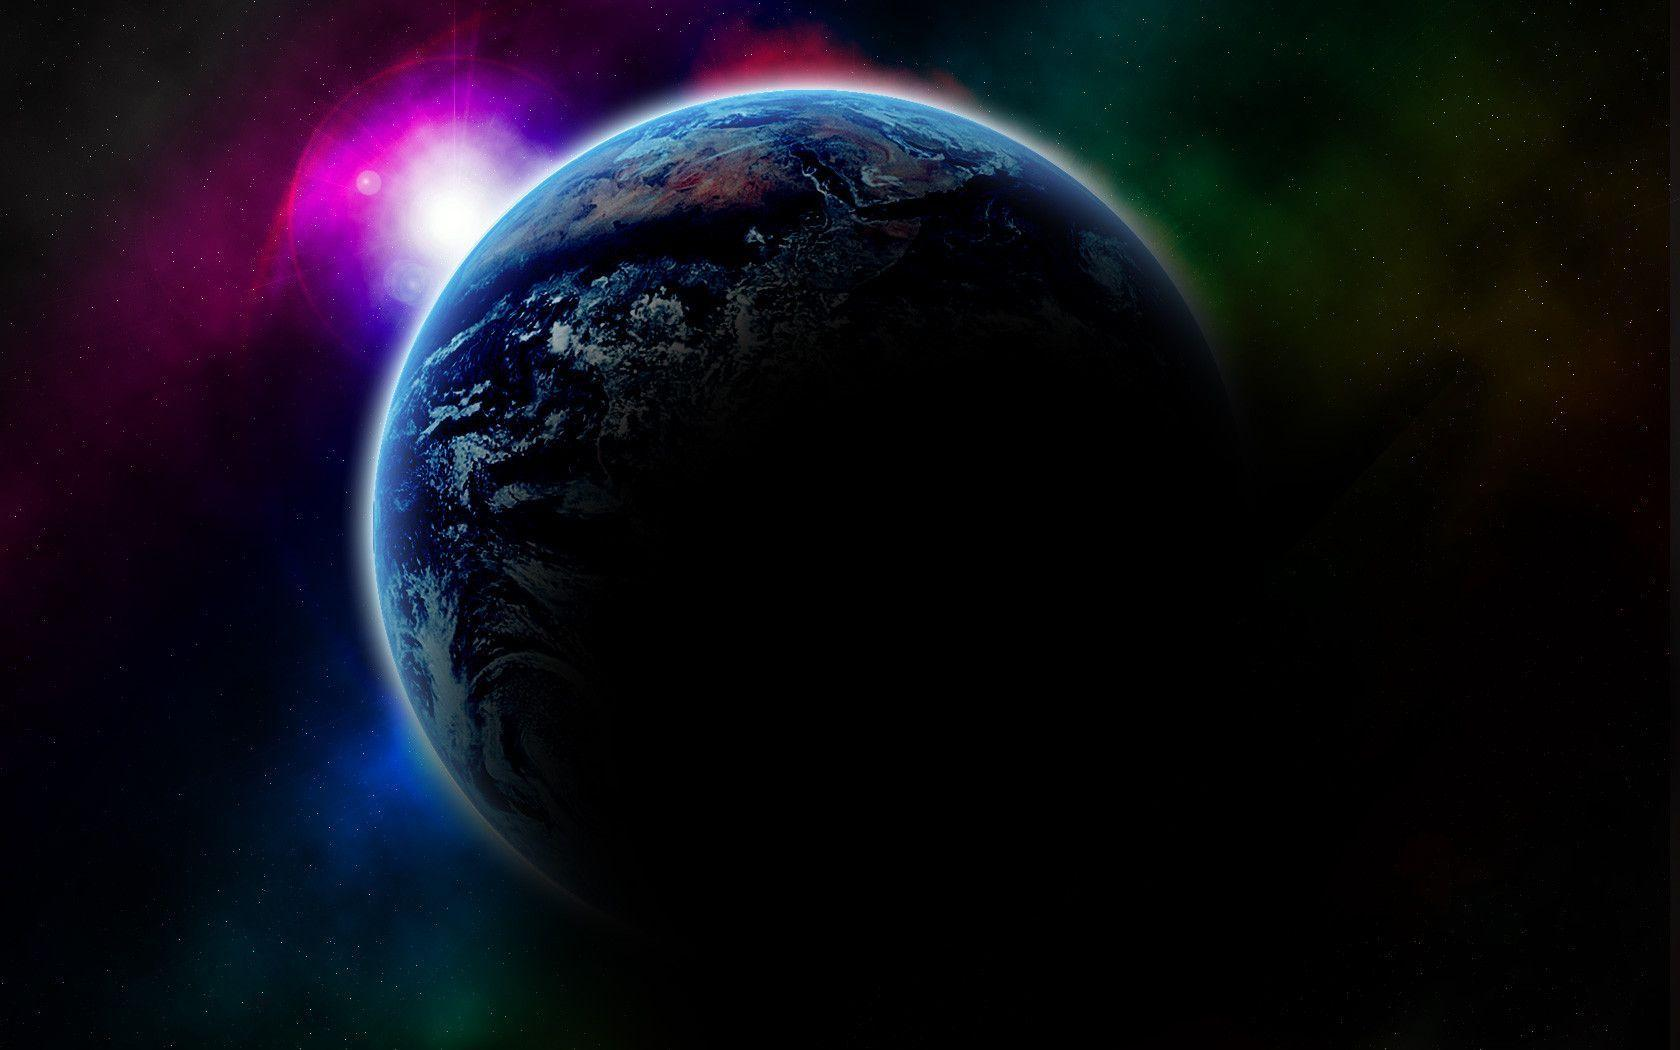 3D Earth Wallpapers 13549 Hd Wallpapers in Space - Telusers.com